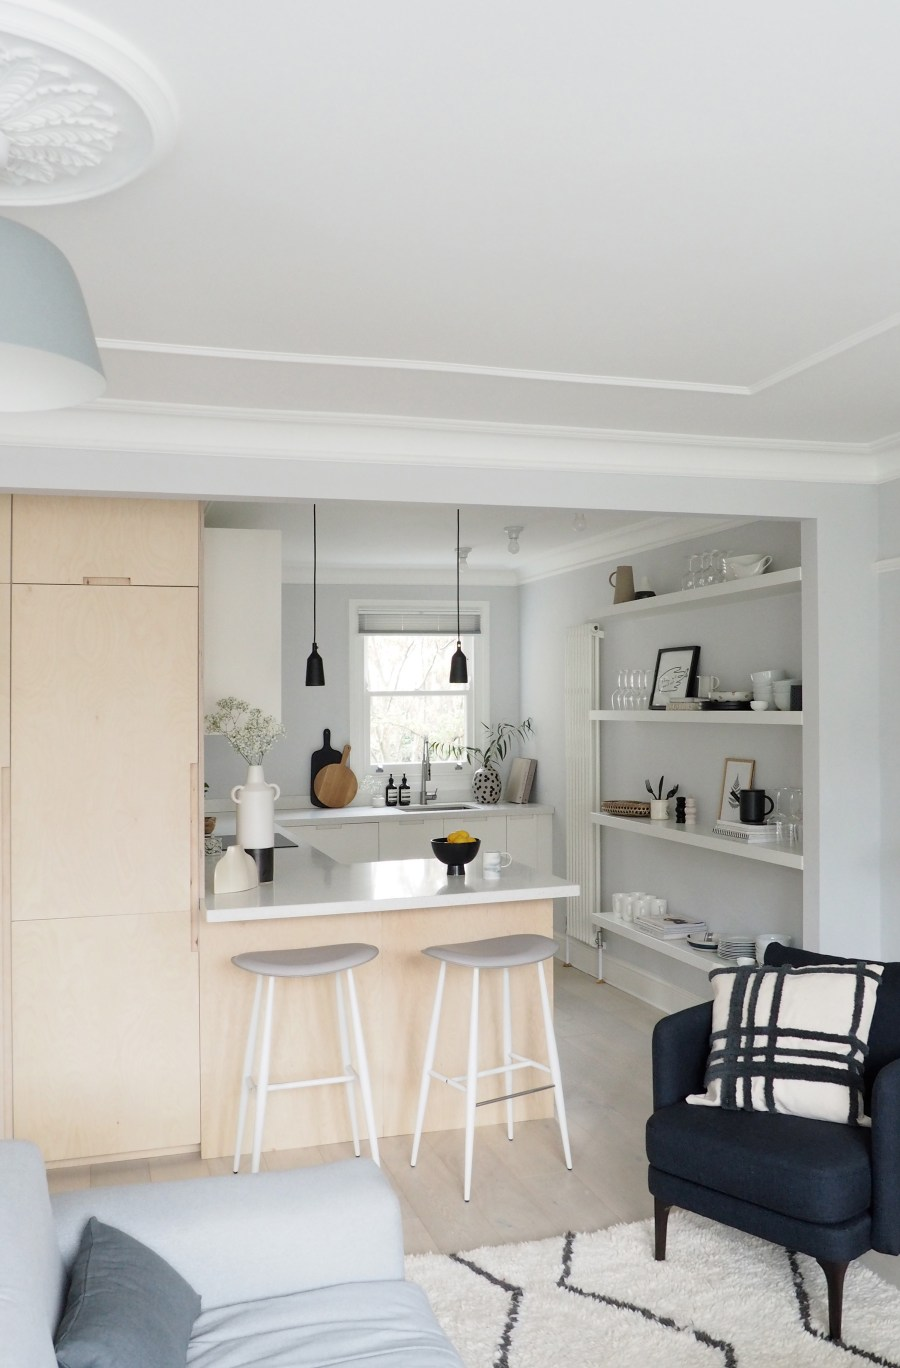 New Interior Project A Light Filled Minimalist Kitchen And Living Room